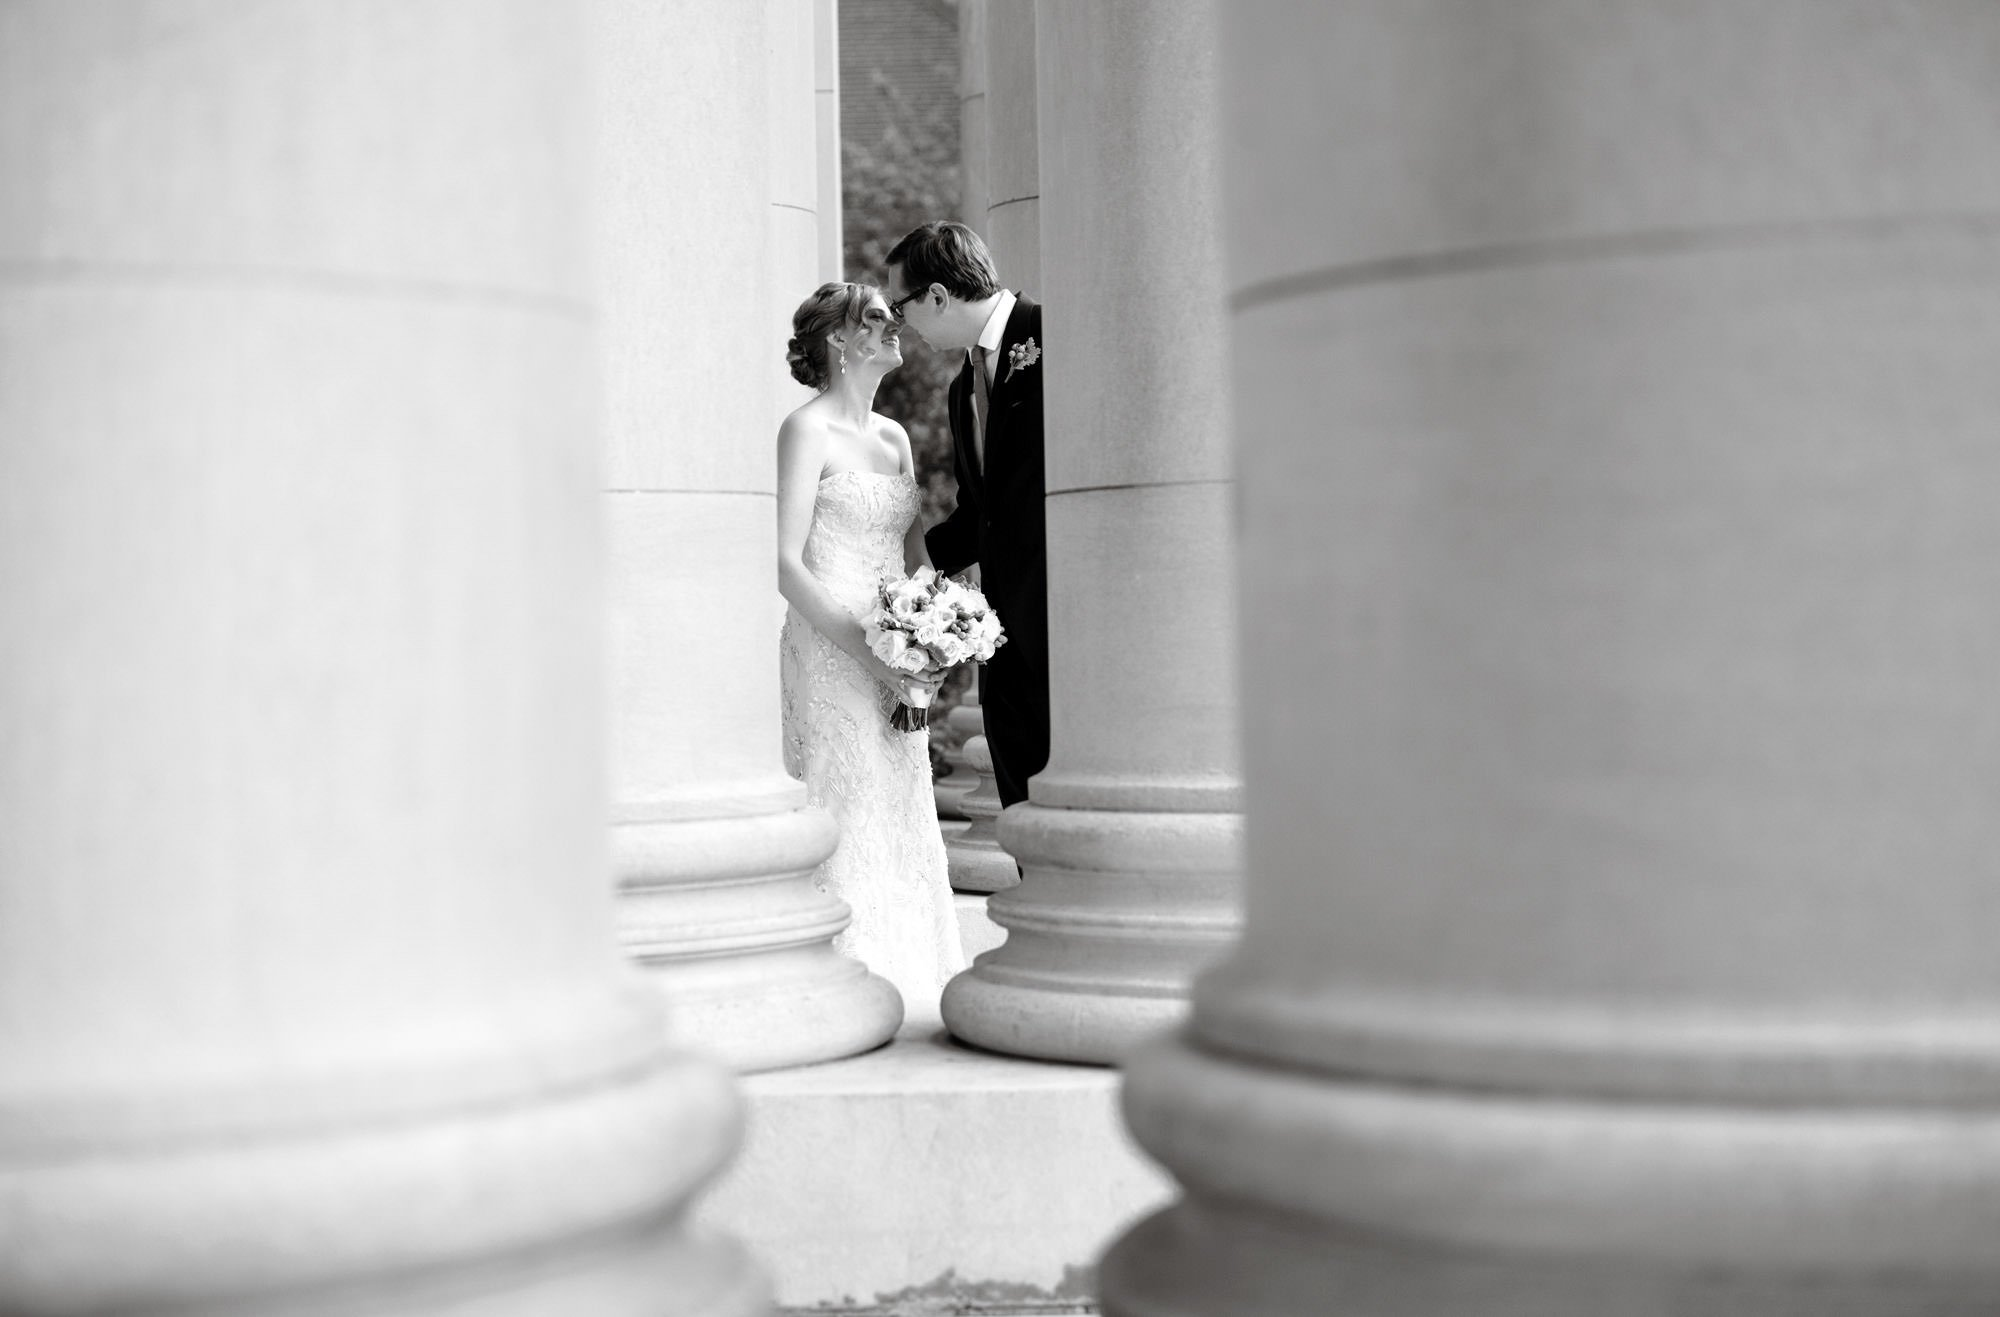 The couple shares a kiss after the Carnegie Institute for Science Wedding ceremony.